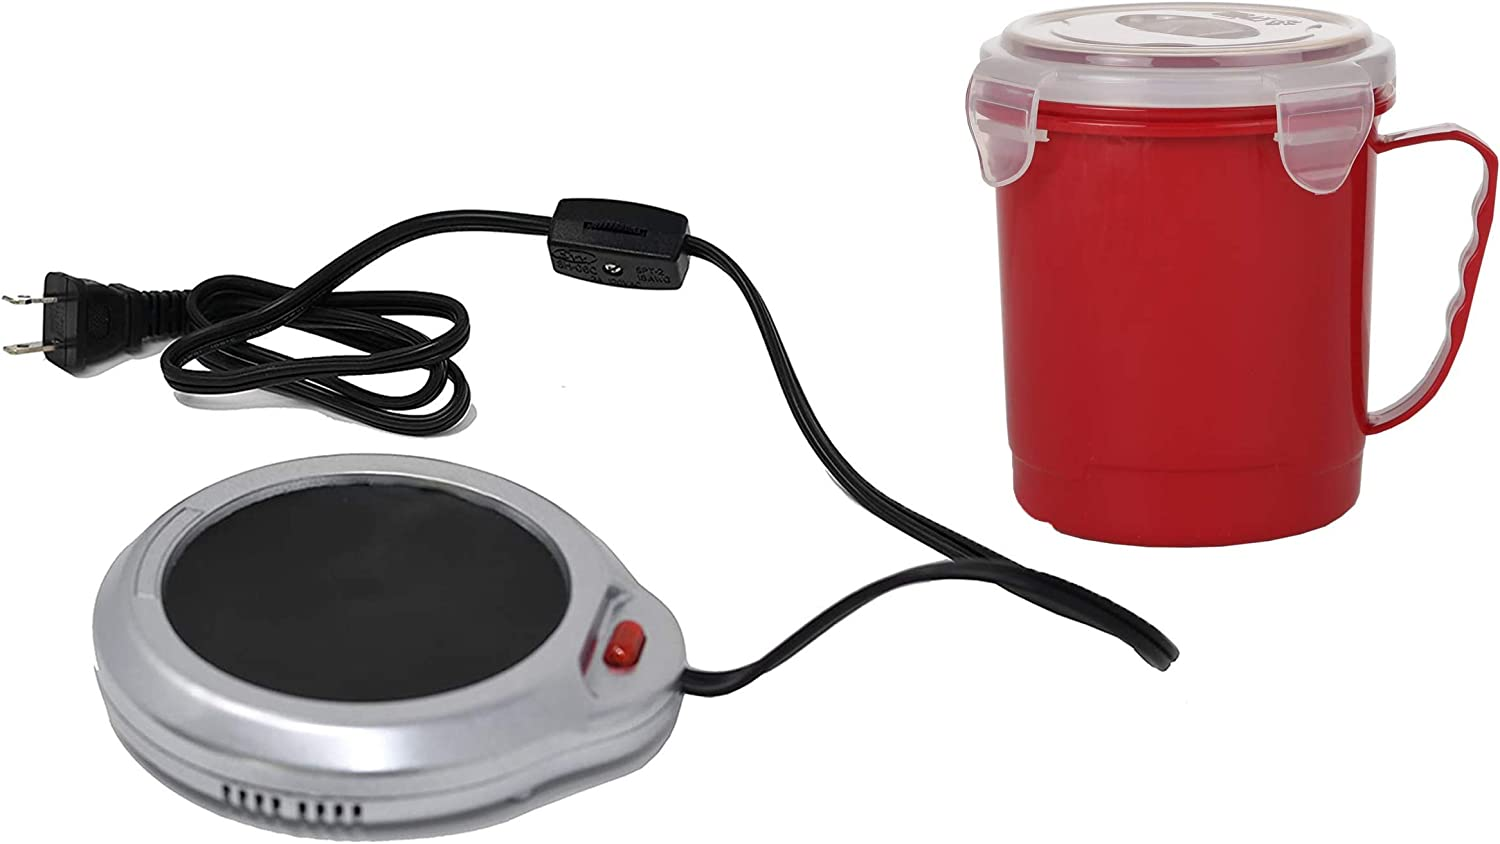 Home-X Mug Warmer, Desktop Heated Coffee & Tea - Candle & Wax Warmer (Silver Finish) and Microwave Soup Mug with Secure Snap Close Vented Lid, 22 Ounce, Red